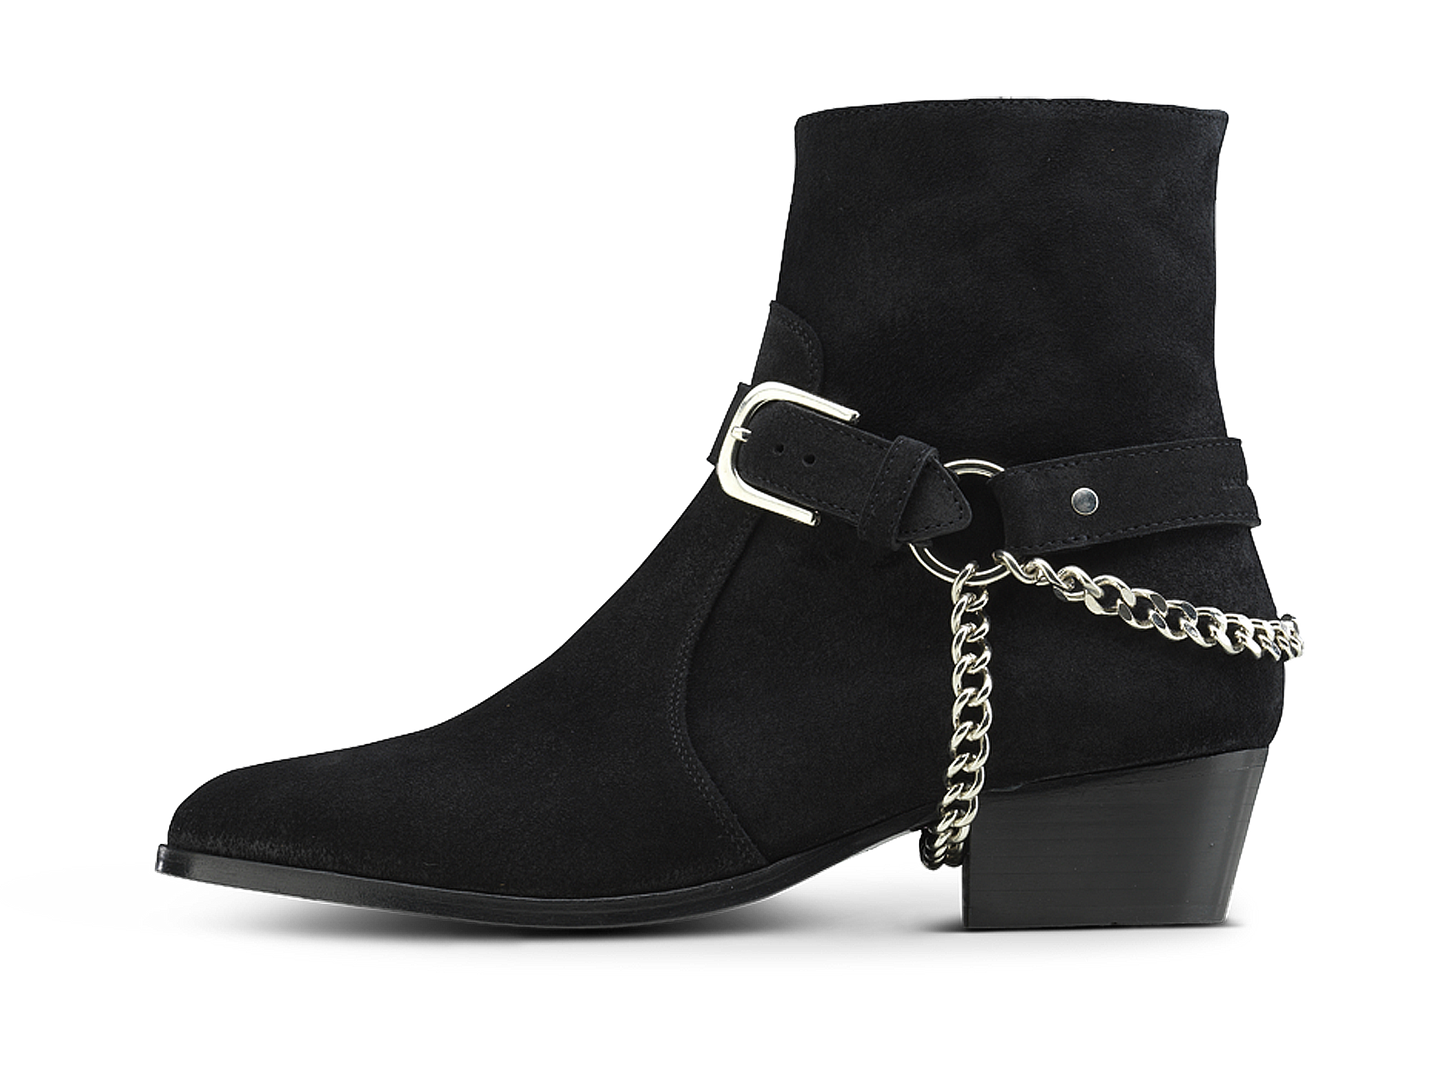 Zimmerman Chain Boot - Black Coffee - Everyday Hero